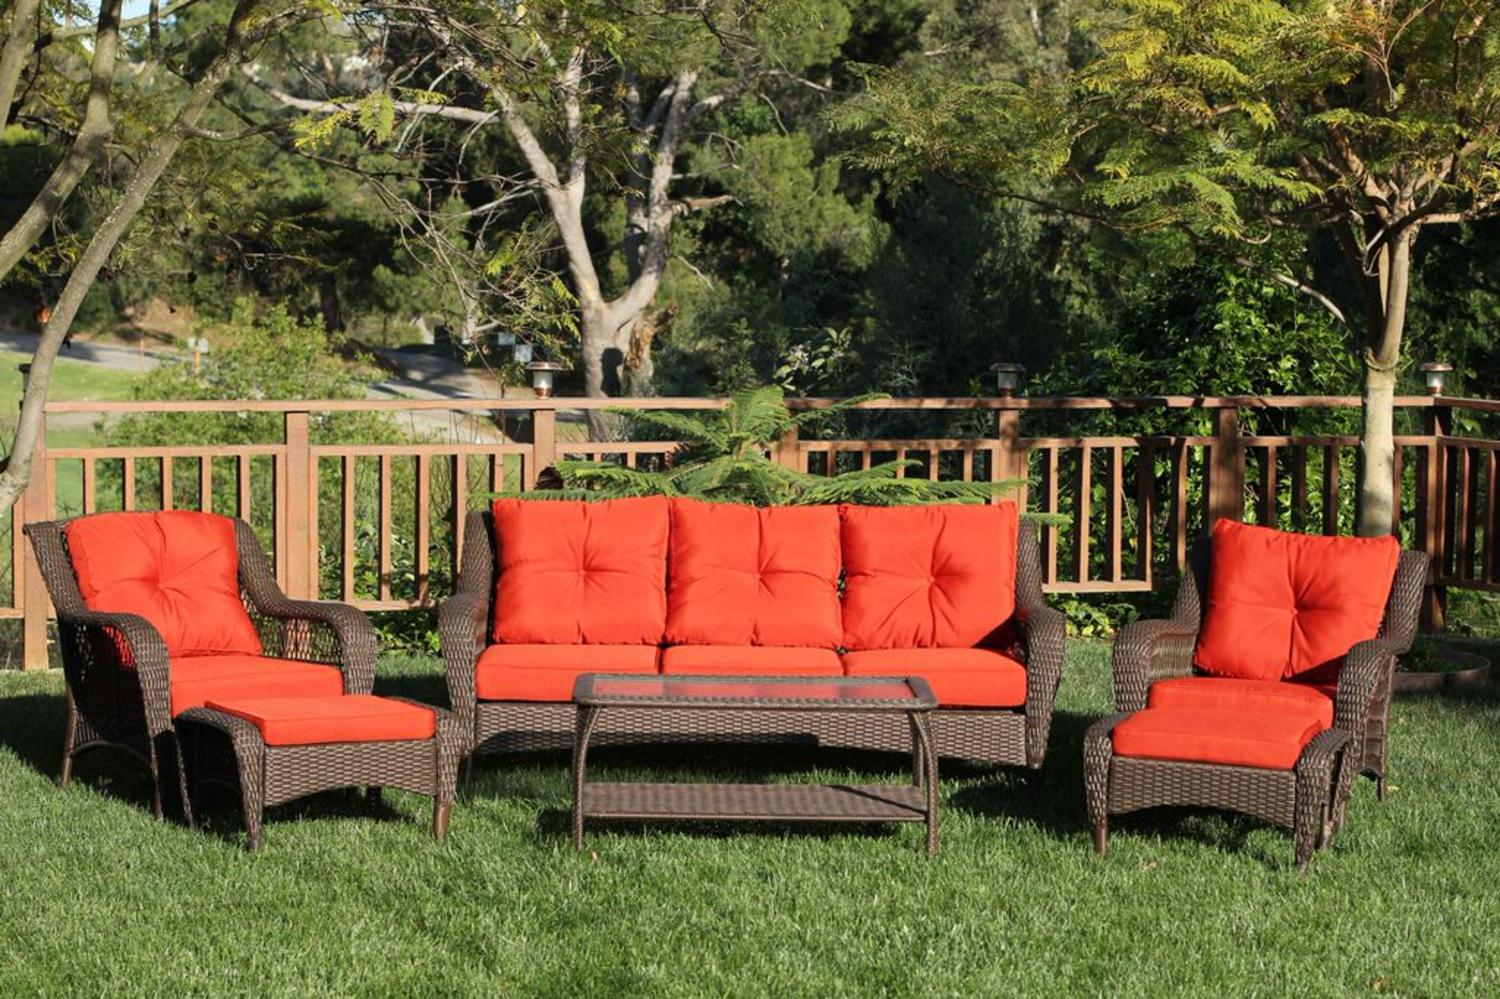 6-Piece Espresso Resin Wicker Outdoor Patio Seating Furniture Set Red-Orange Cushions by CC Outdoor Living